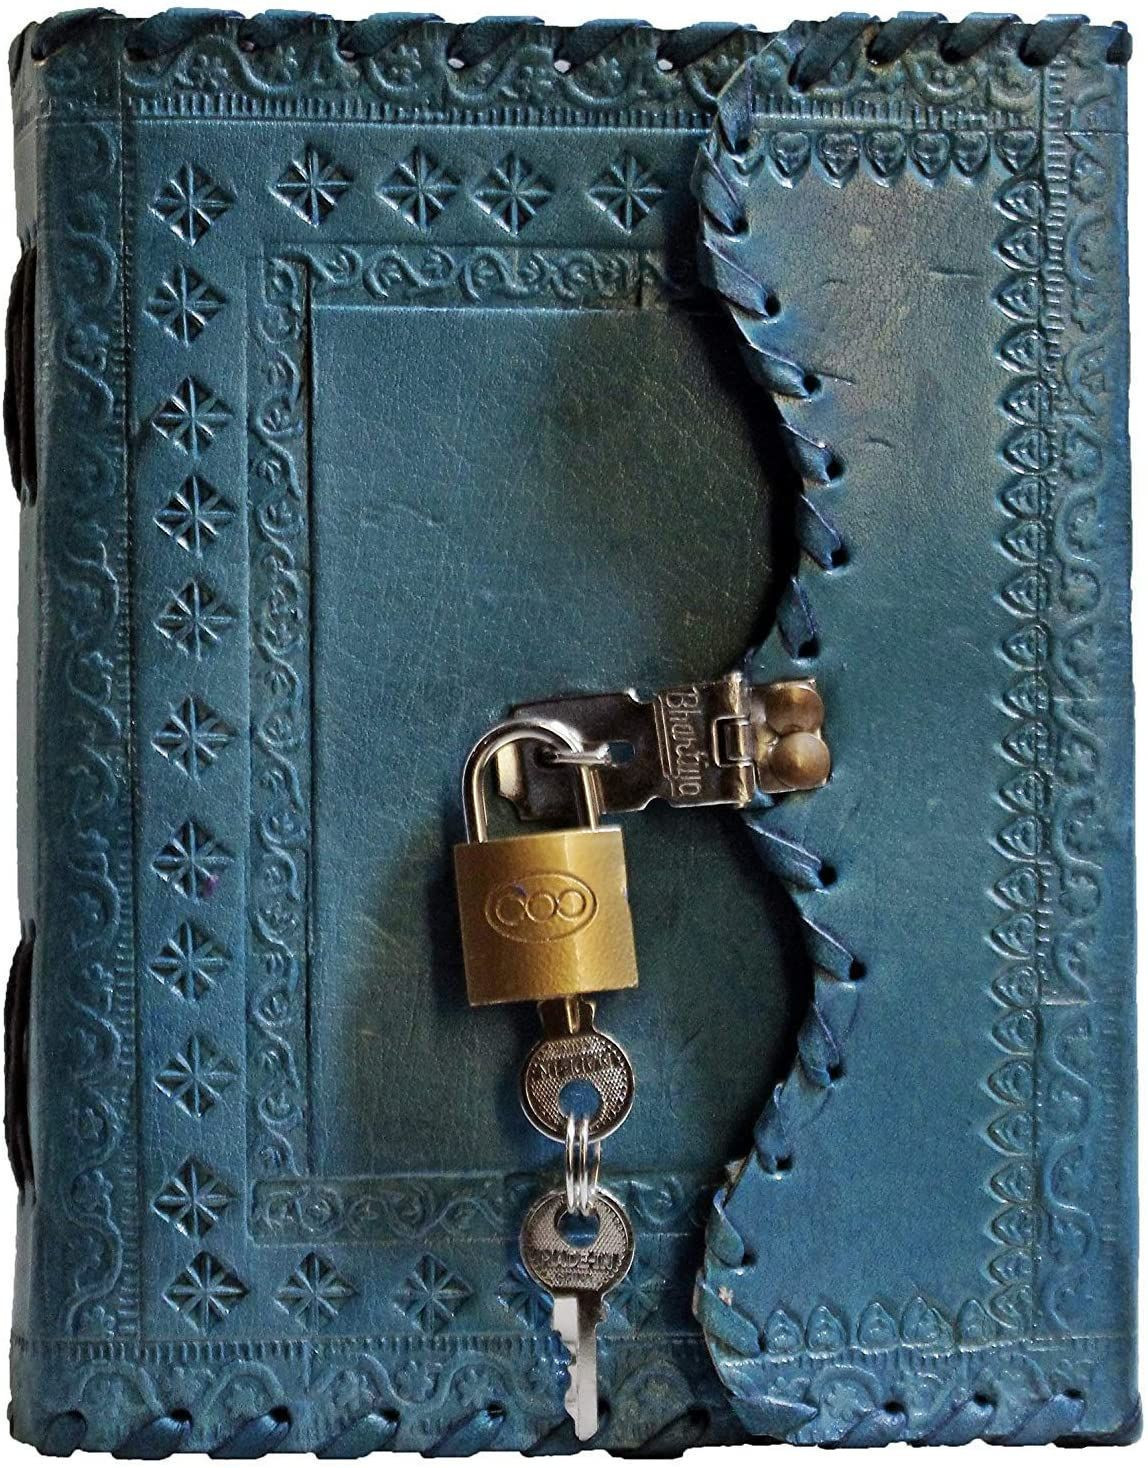 TUZECH Leather Genuine Vintage Leather Journal Travel Diary Write Poems Notebook Perfect Gift